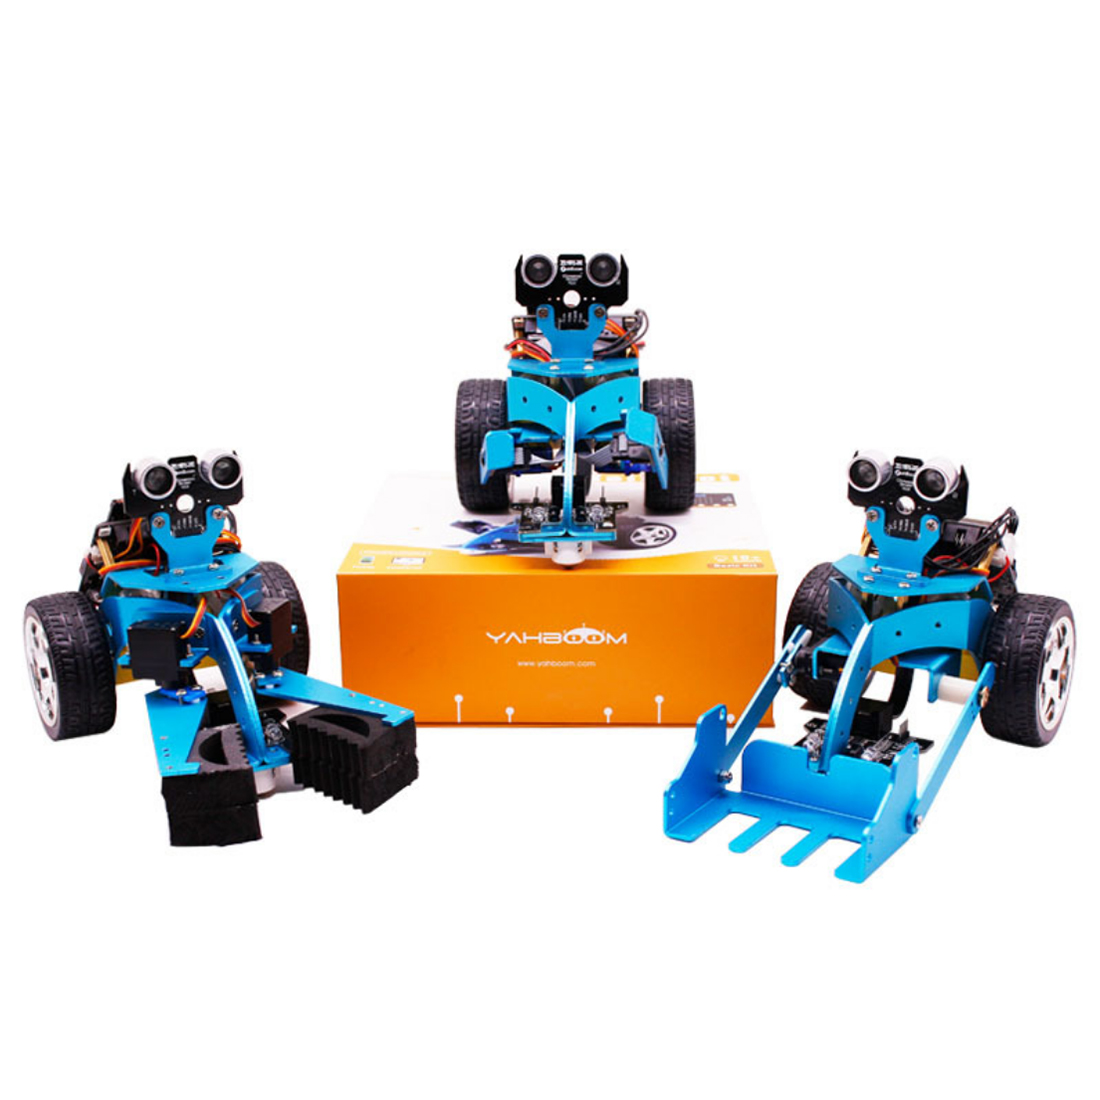 3-in-1 Graphical Programmable Robot Car With Bluetooth IR And Tracking Module Aluminum Alloy Stem Steam Robot Car Toy For Micro